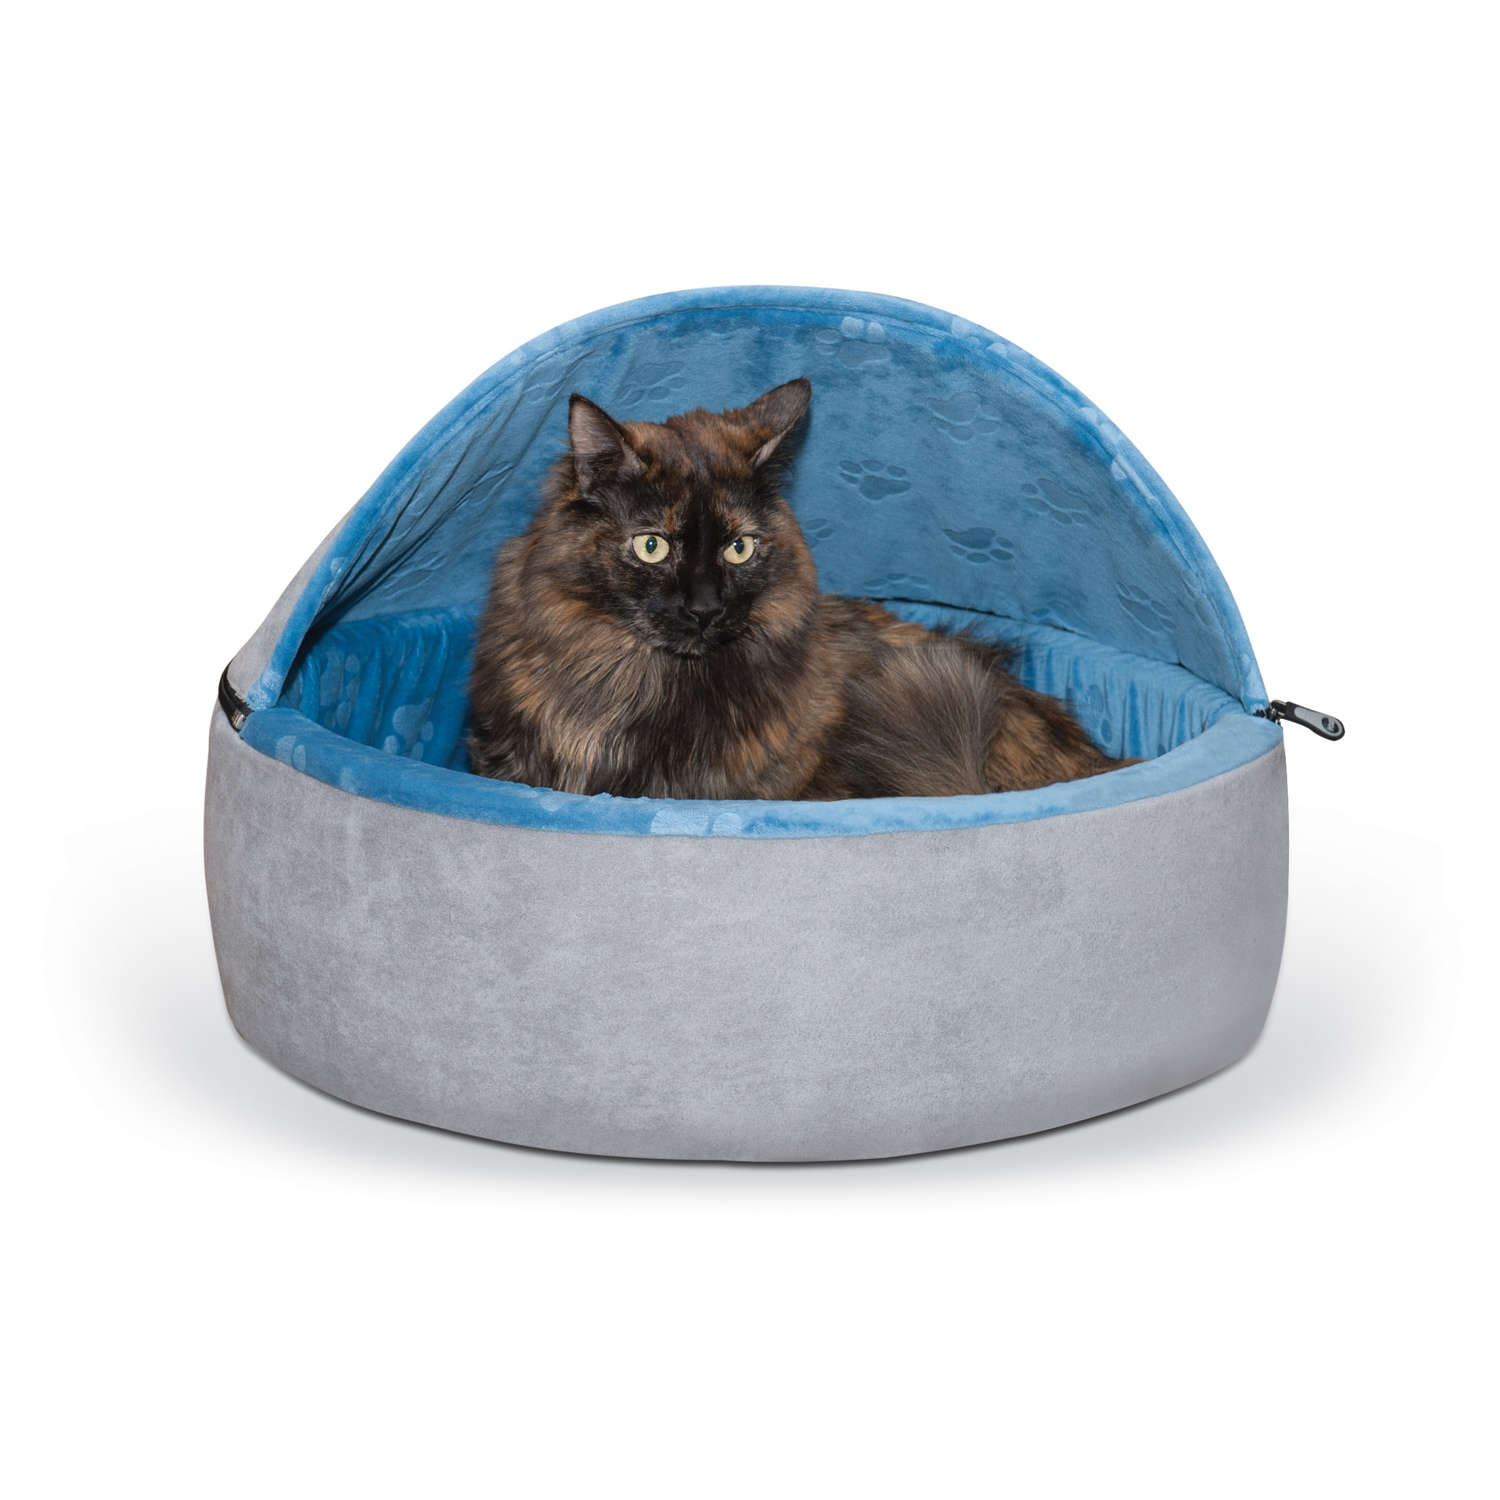 "K&H Pet Products Self-Warming Kitty Bed Hooded Large Blue/Gray 20"" x 20"" x 12.5"" Cat Beds - London the Local"